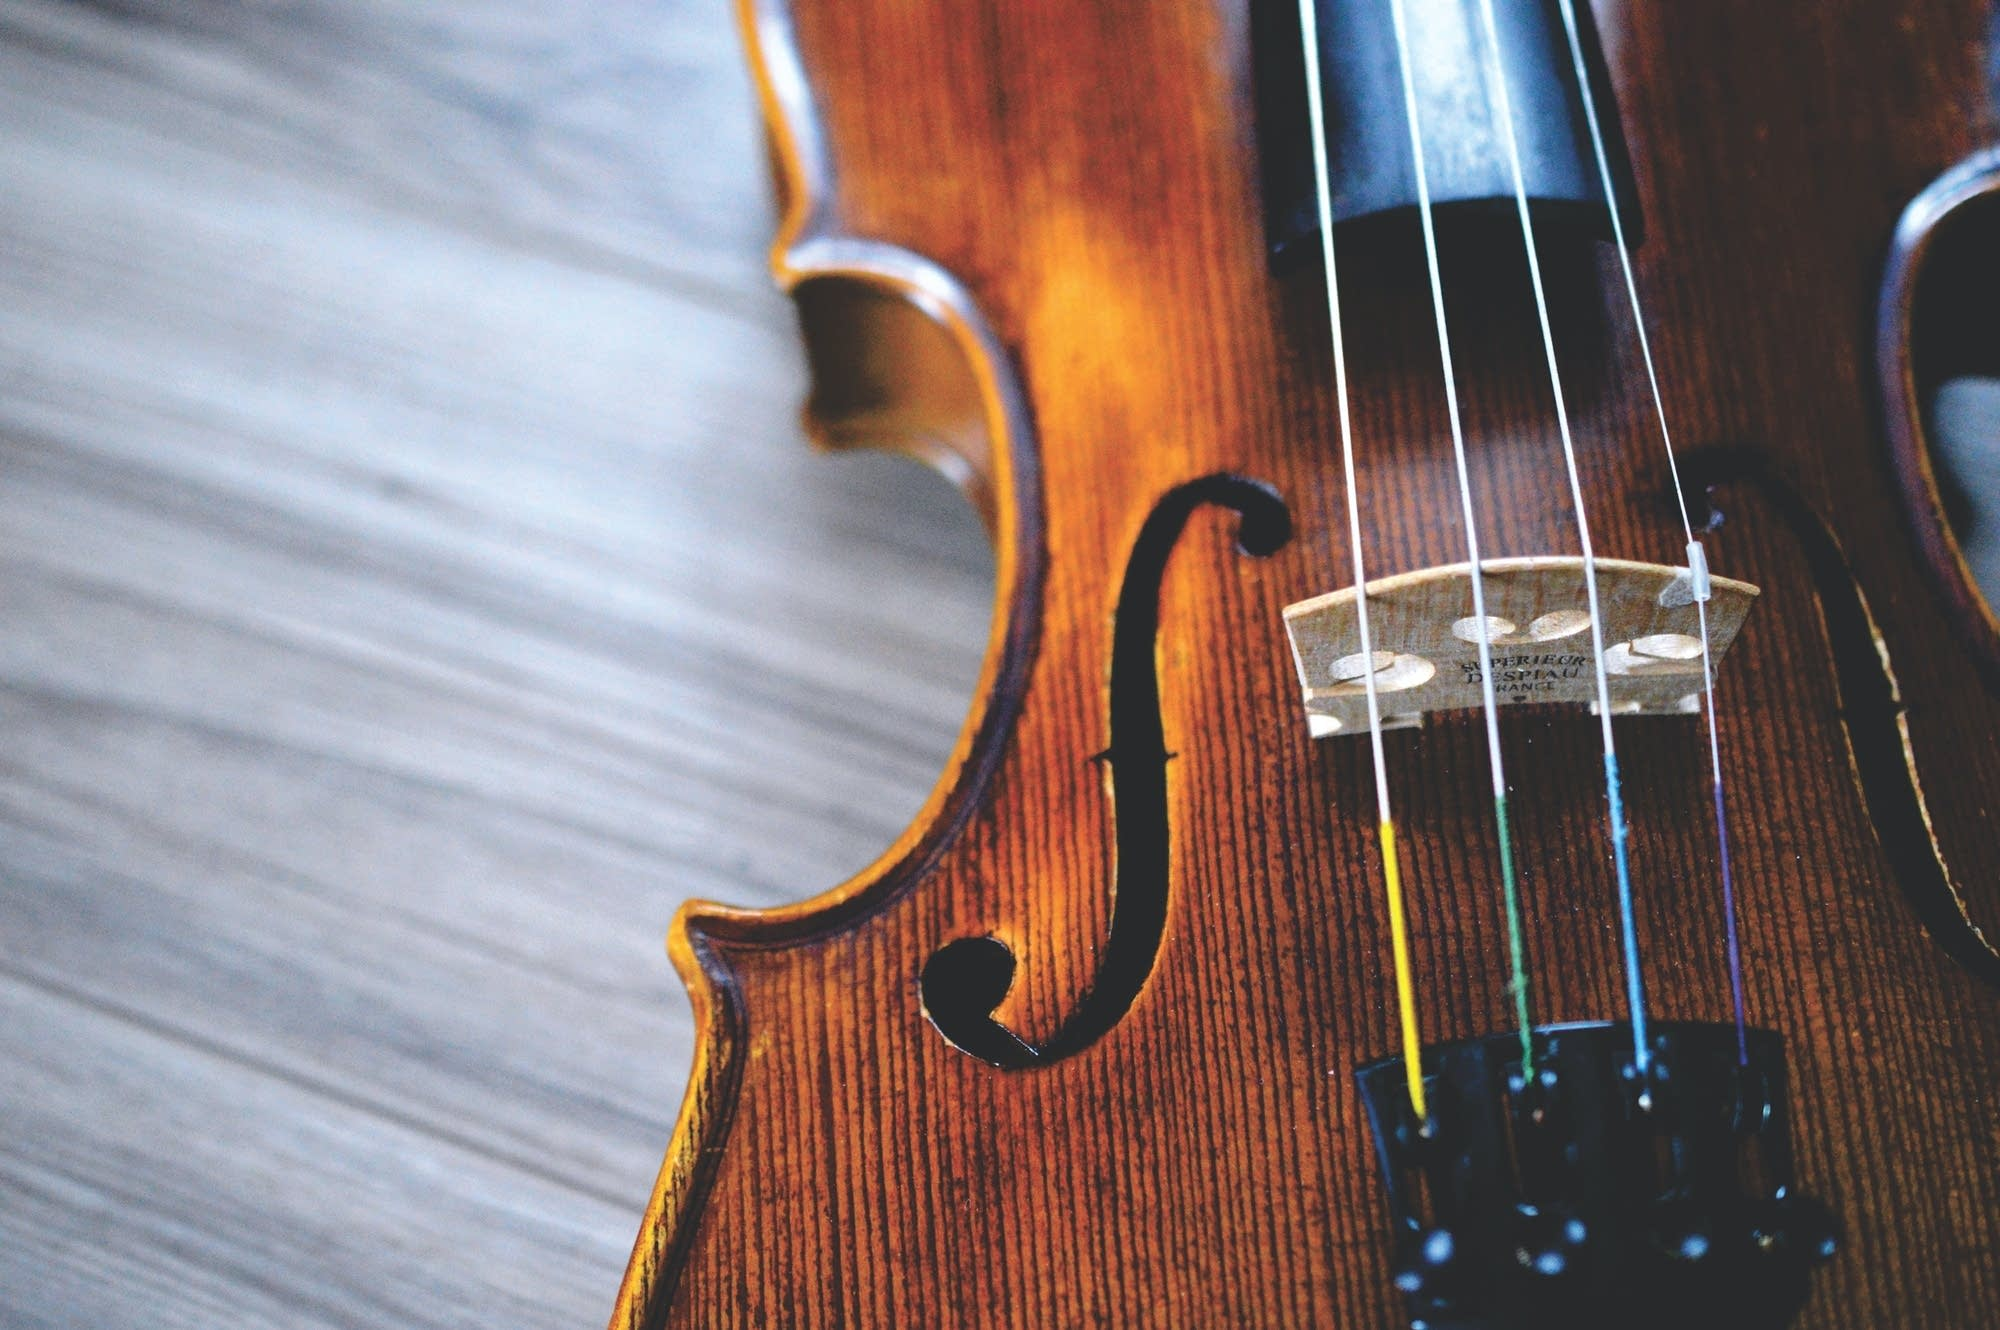 Explore the exciting sounds of Nicolo Paganini.